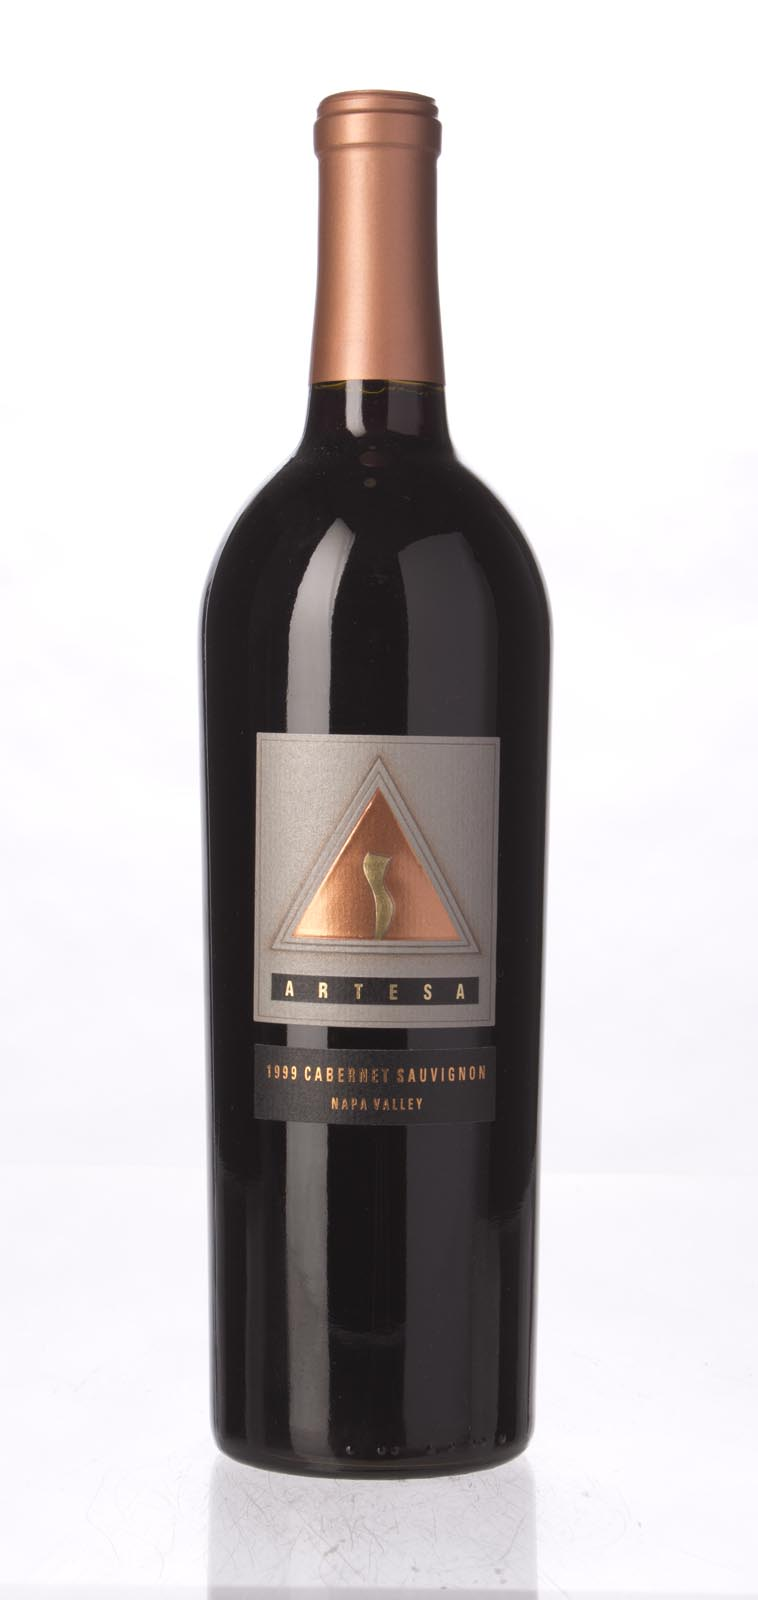 Artesa Cabernet Sauvignon Napa Valley 1999, 750mL (WS92) from The BPW - Merchants of rare and fine wines.